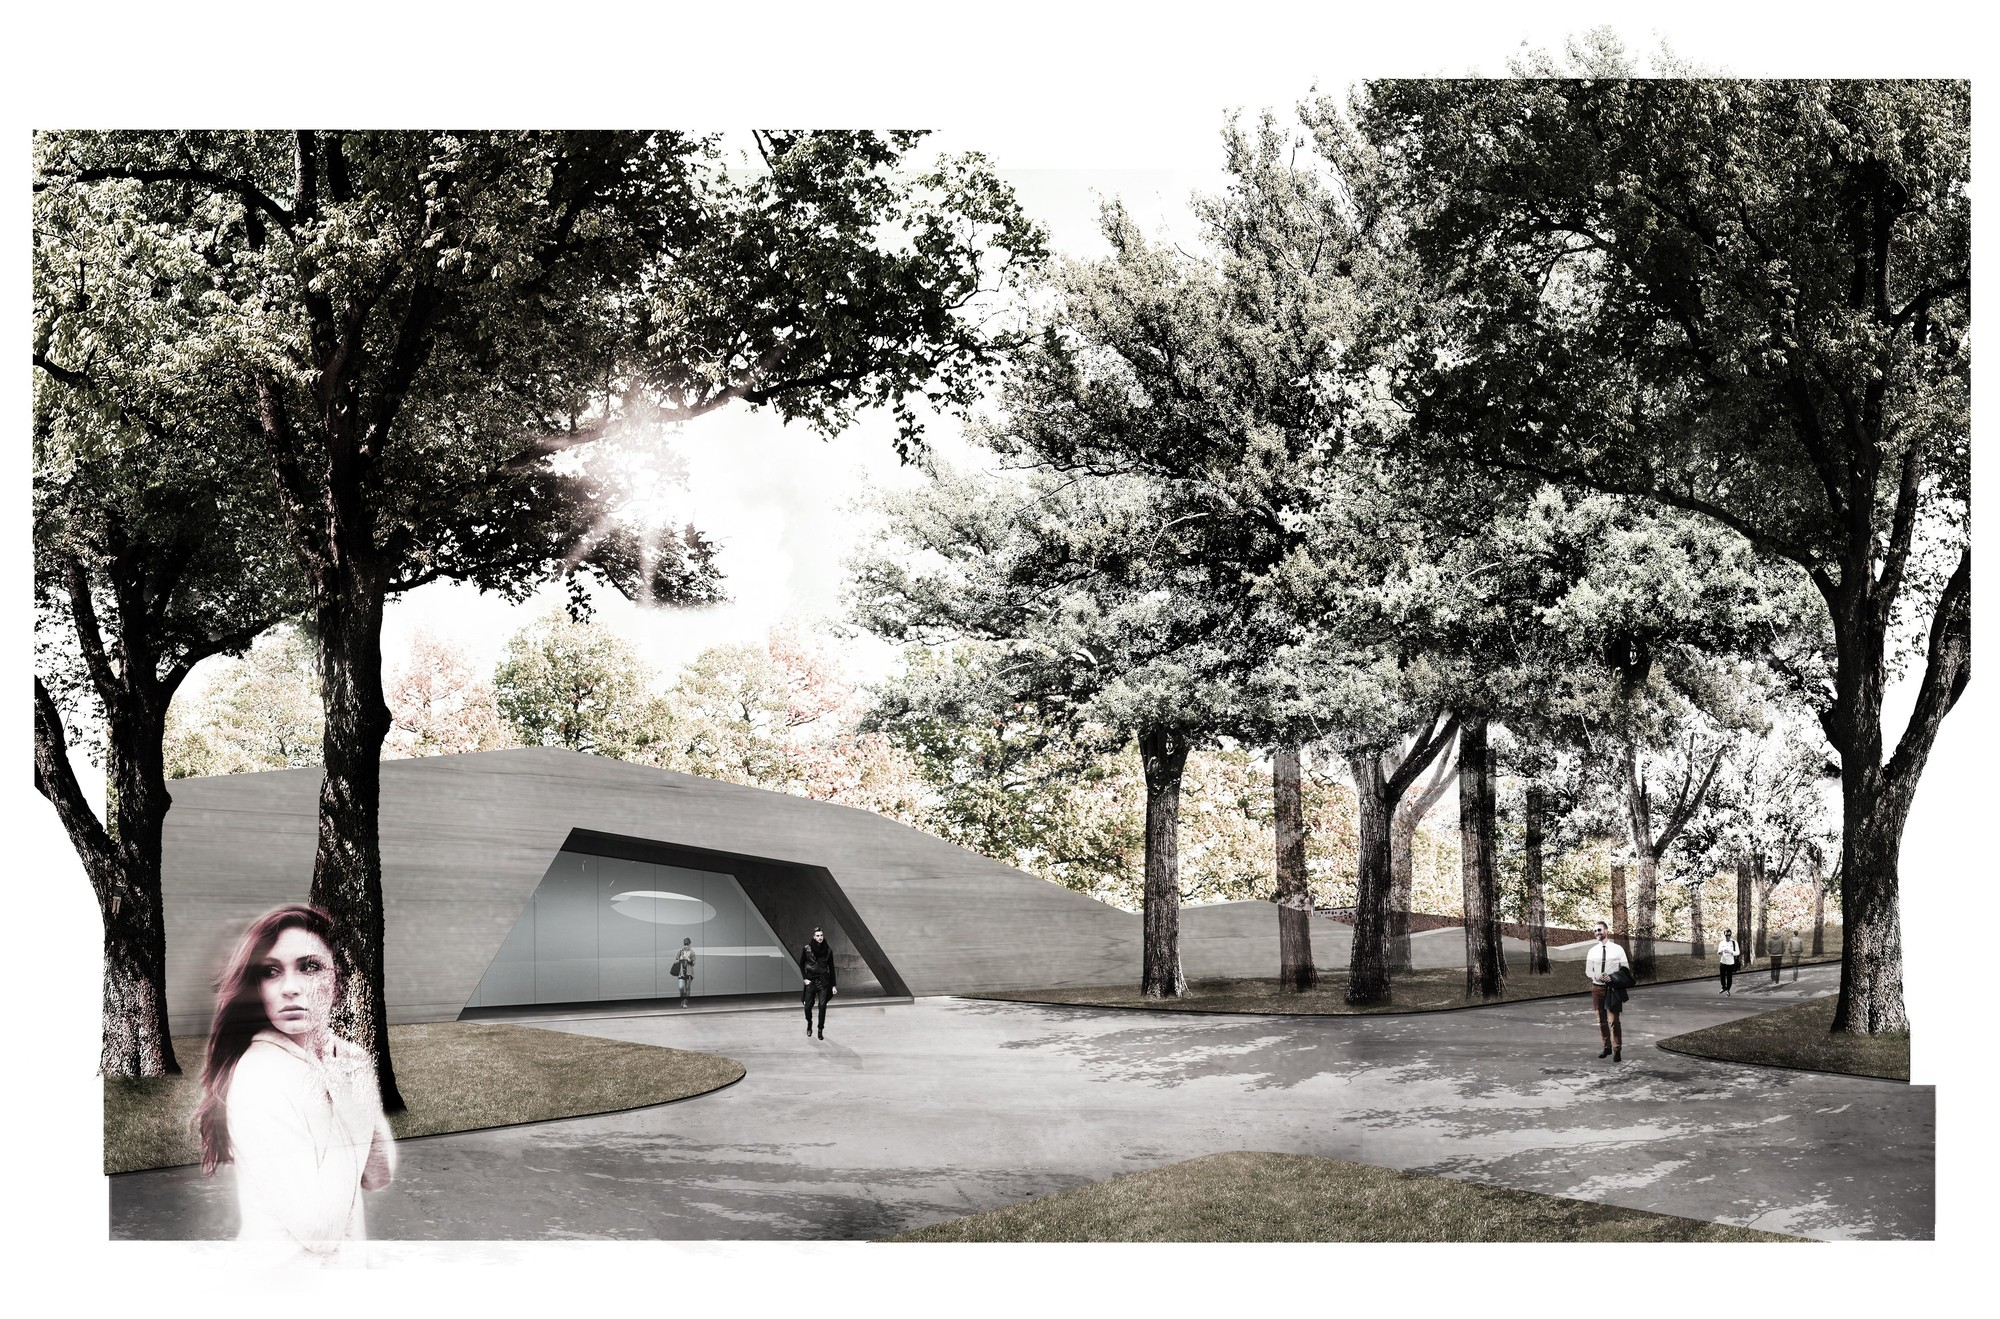 Mecanoo Wins Competition to Design Subterranean Museum in Warsaw, Entrance 2. Image Courtesy of Mecanoo